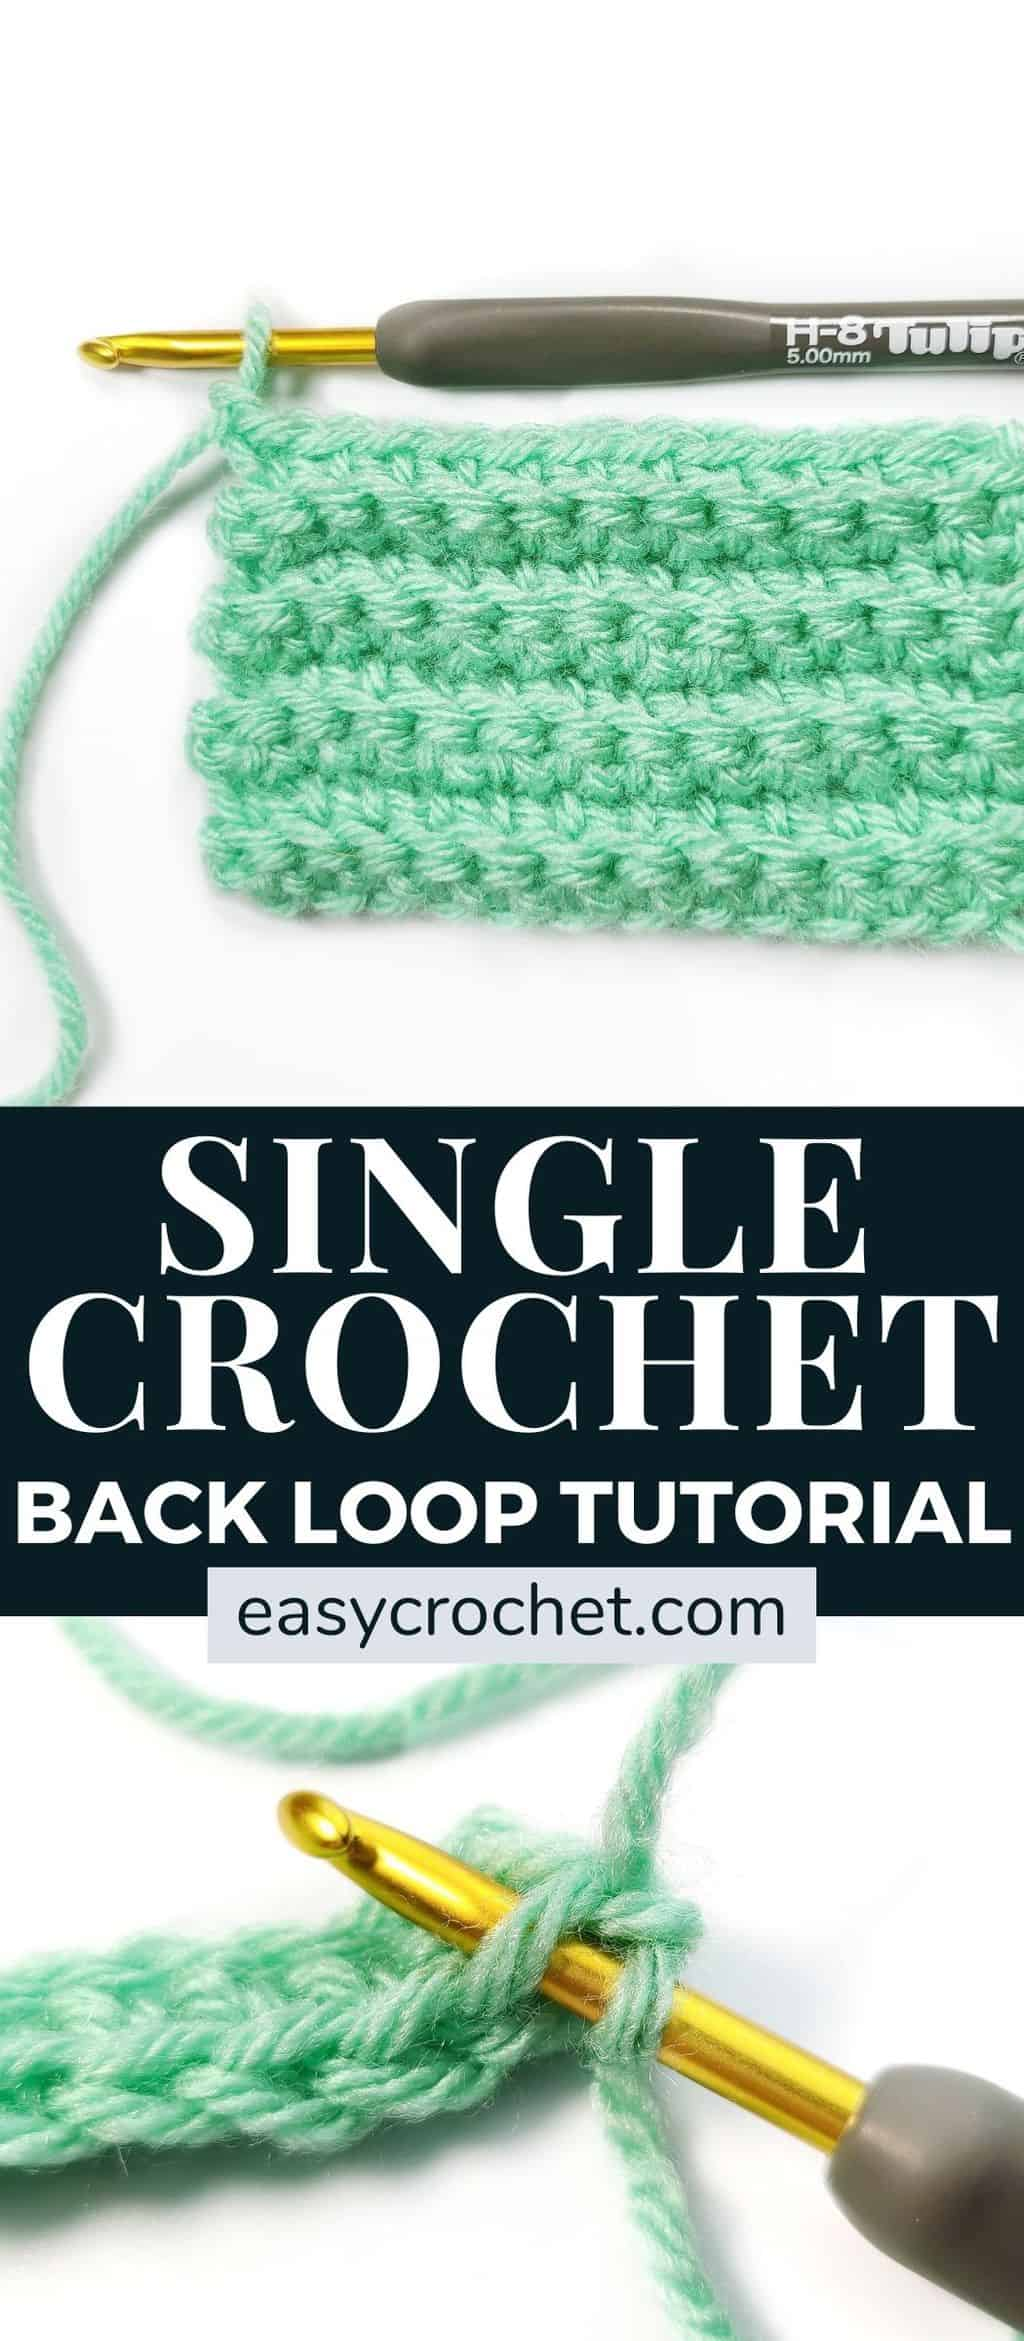 How to Single Crochet in the Back Loop Tutorial